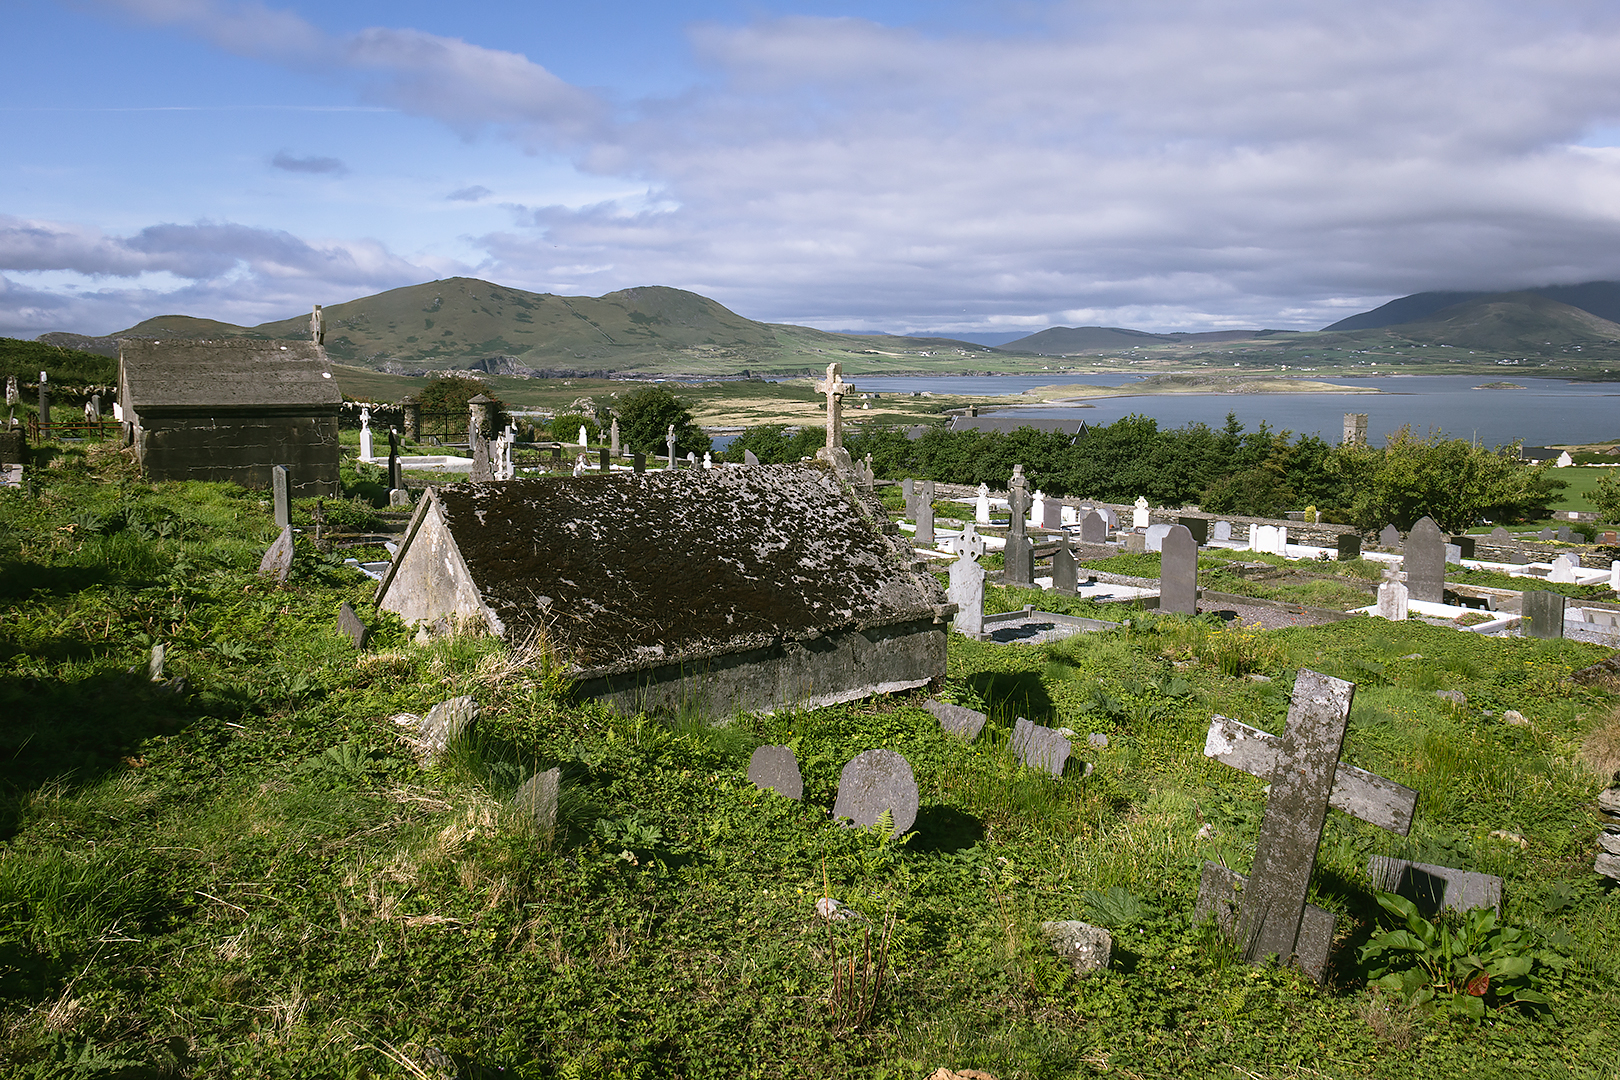 Kylemore burial ground, Valentia Island